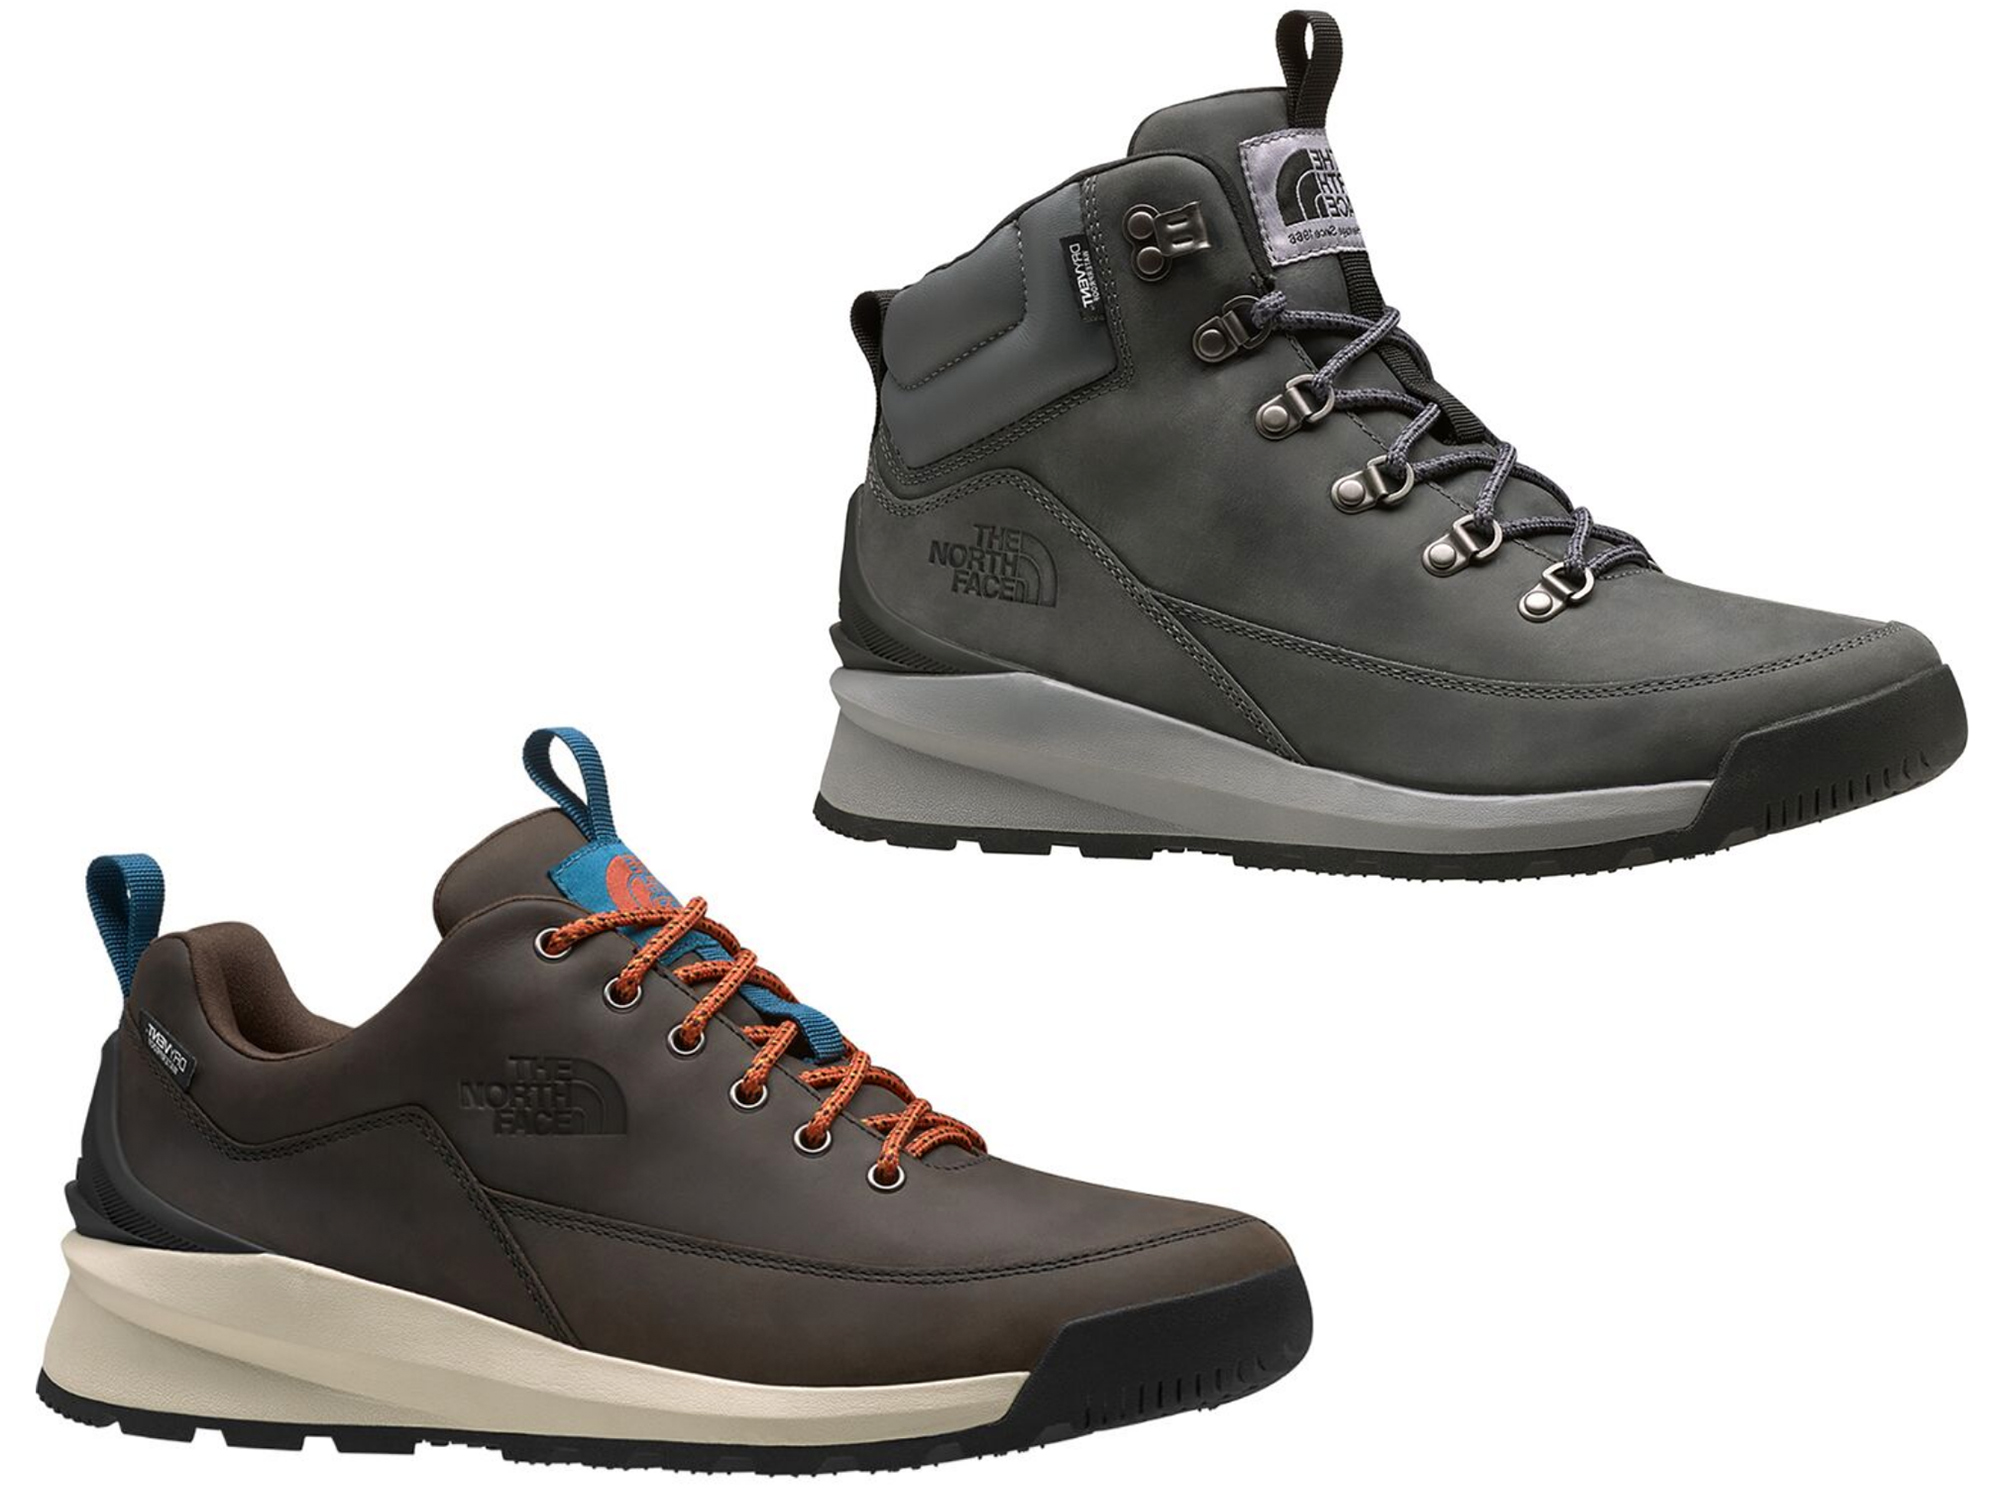 the north face berkeley boots in low and mid waterproof styles